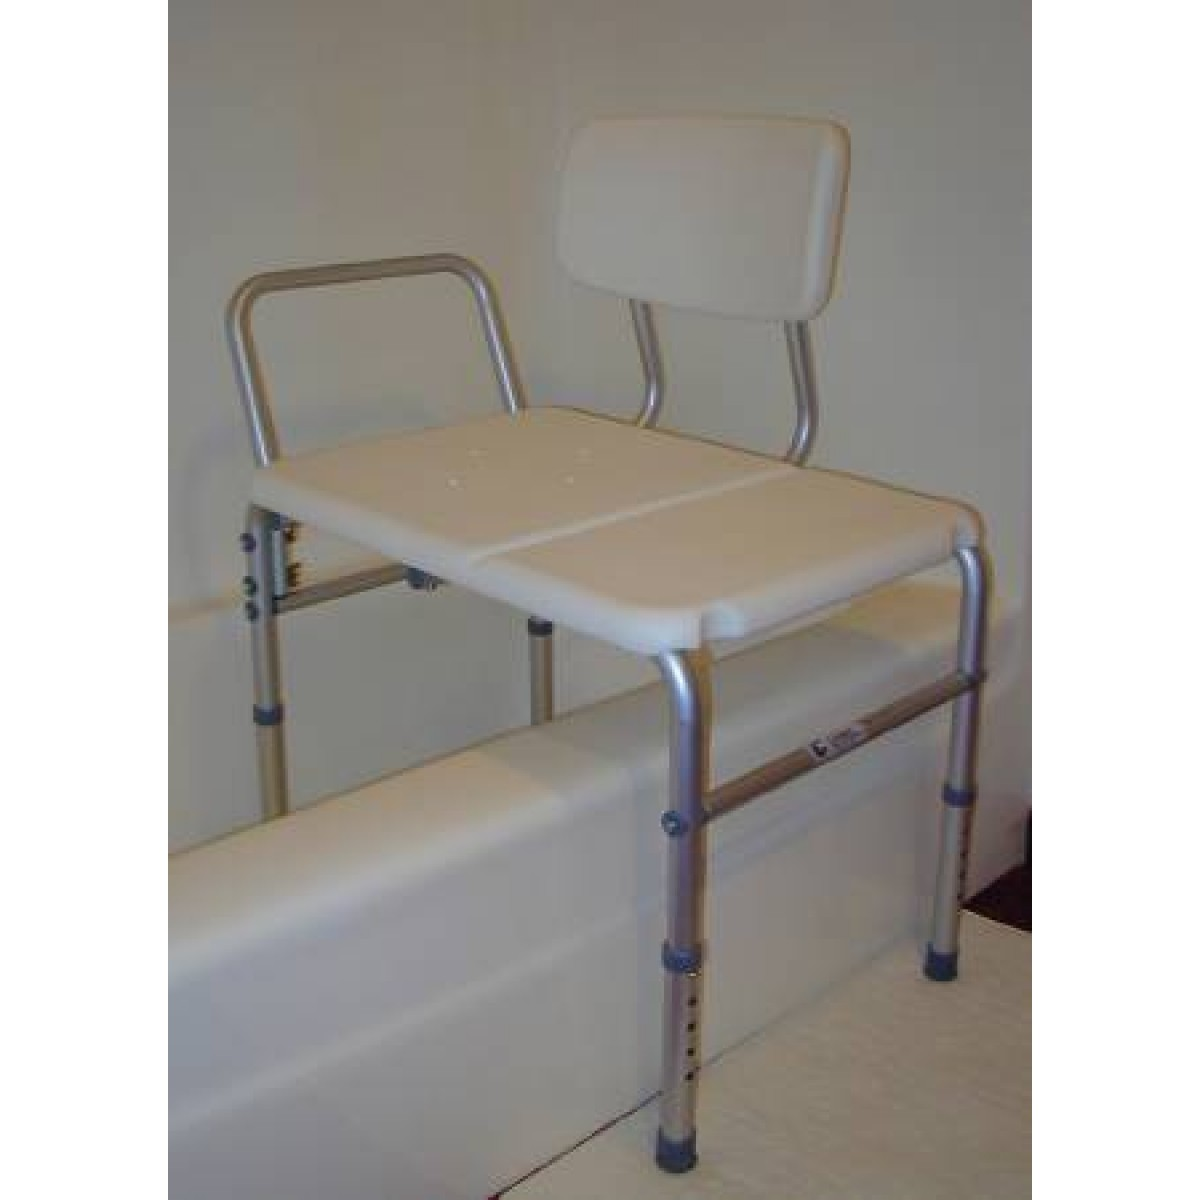 cross transfer drive index deluxe bench with medical bariatric brace shower frame